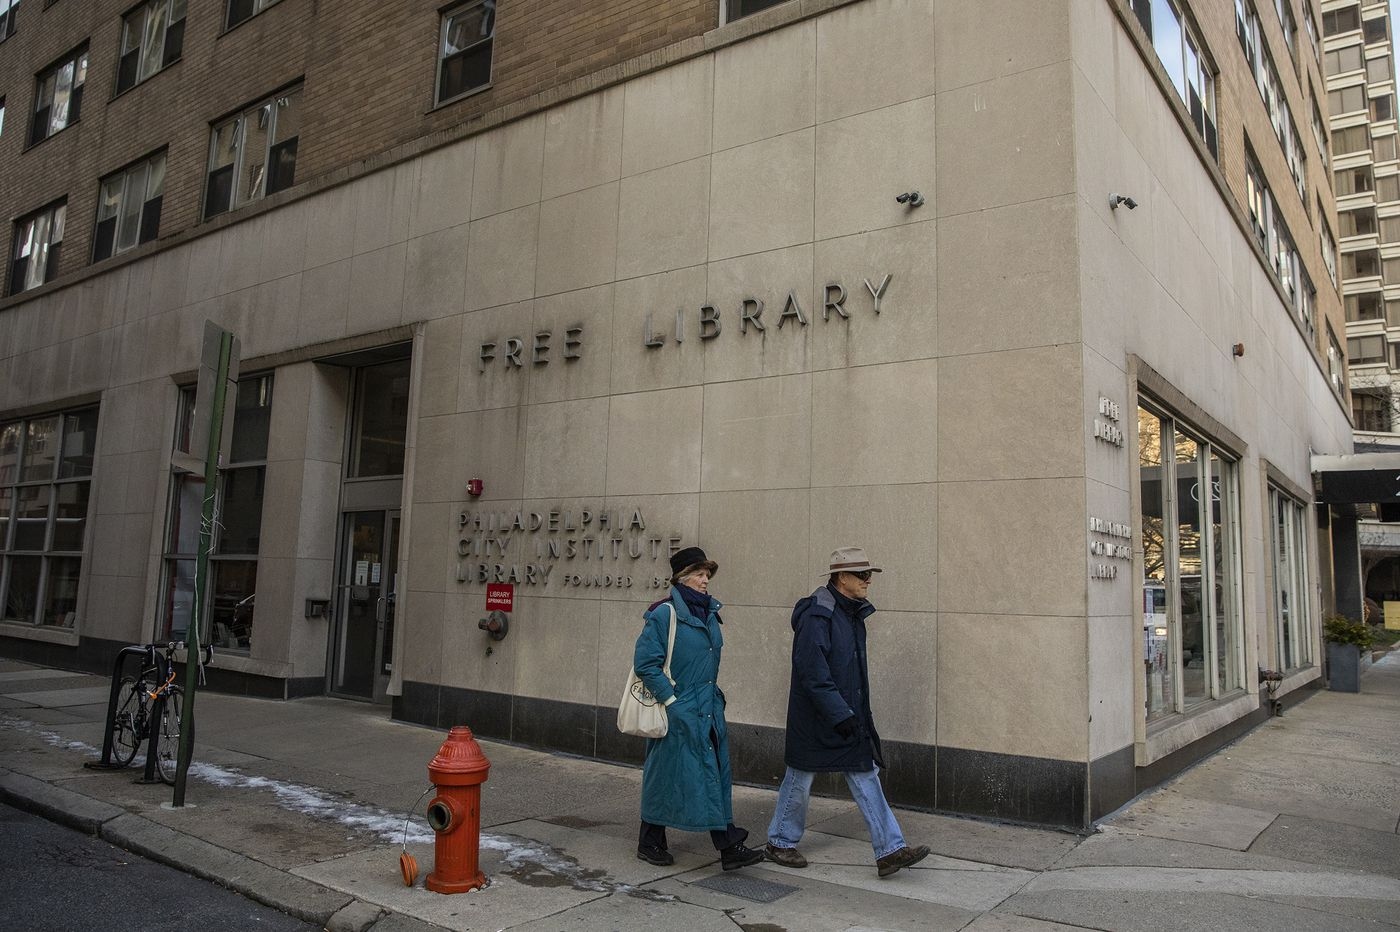 Free Library staff complain of workplace bias, harassment